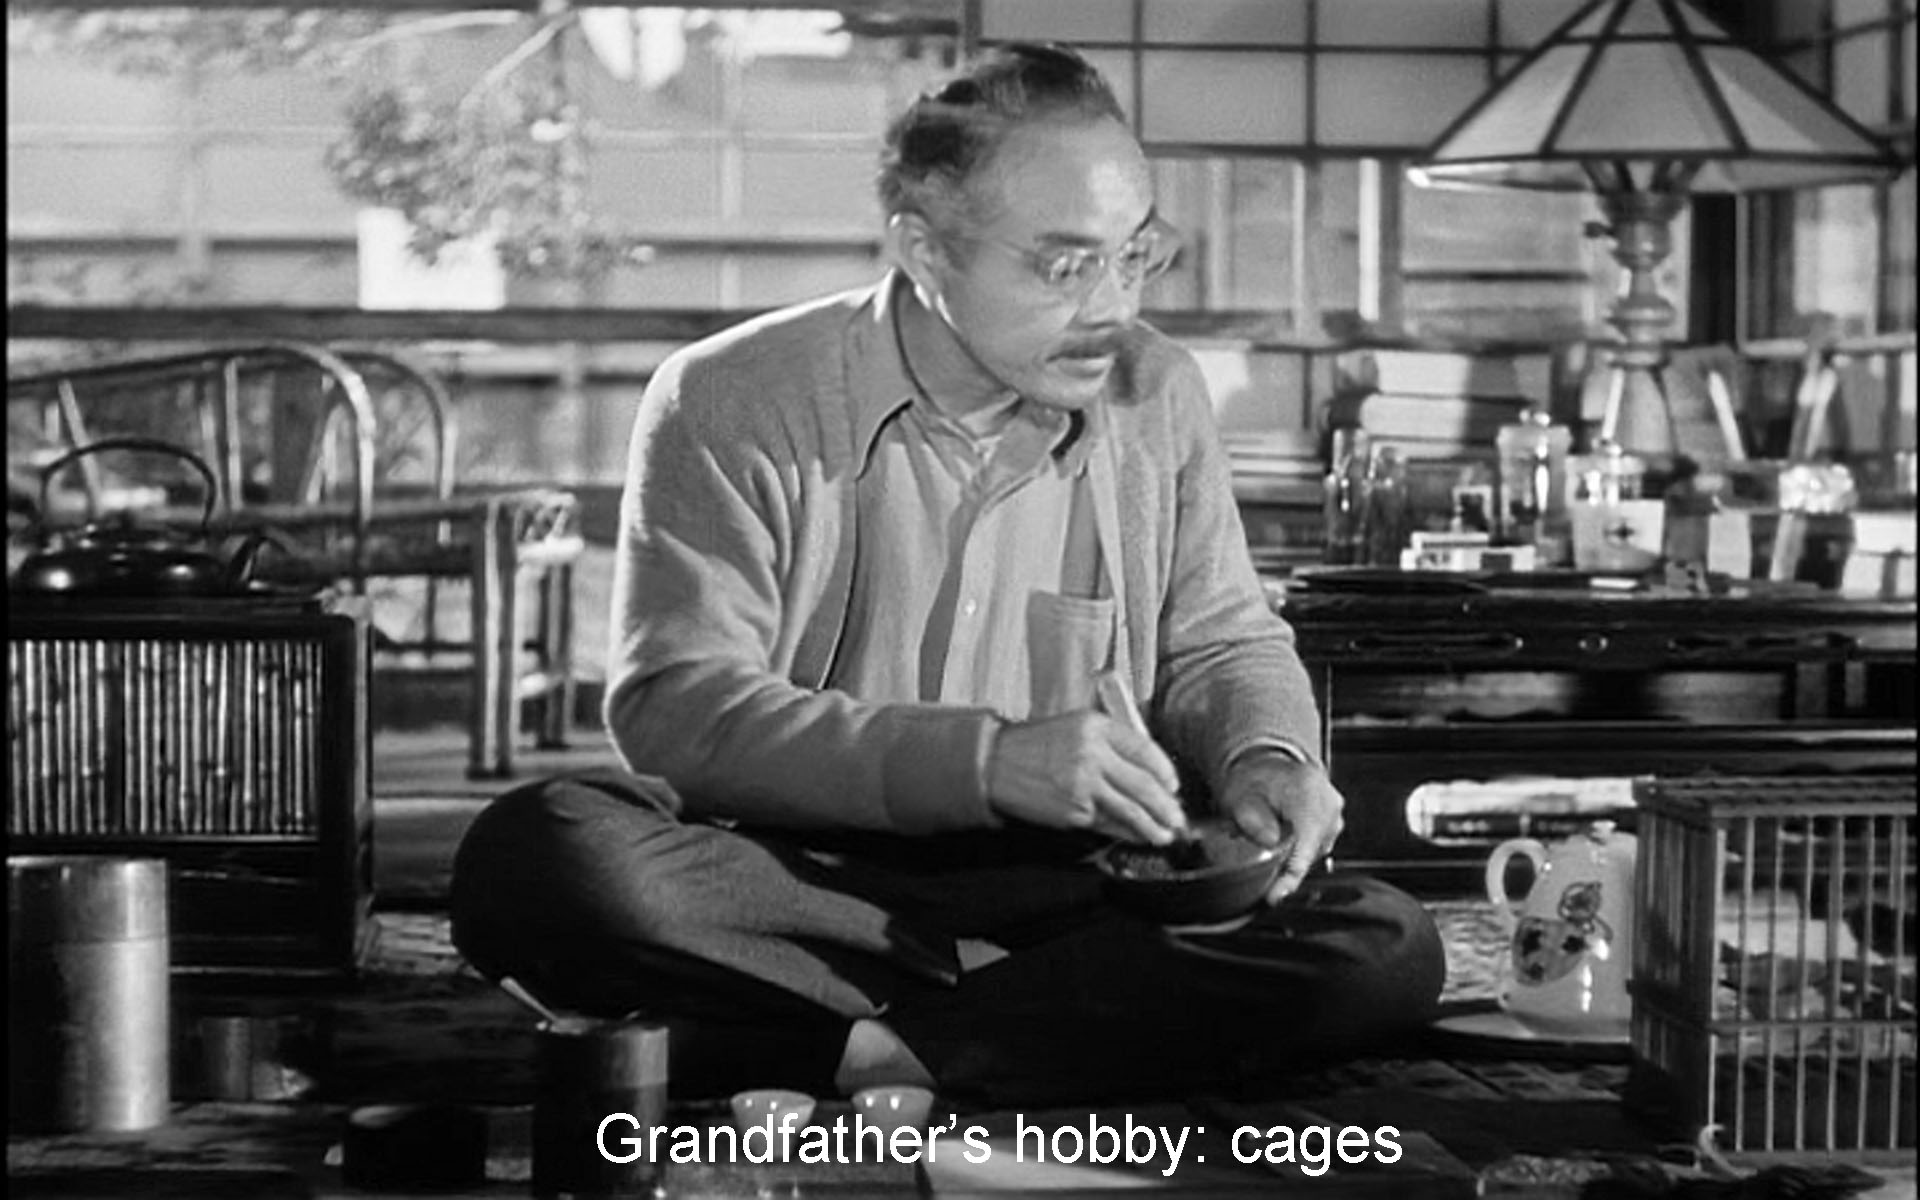 Grandfather's hobby: cages